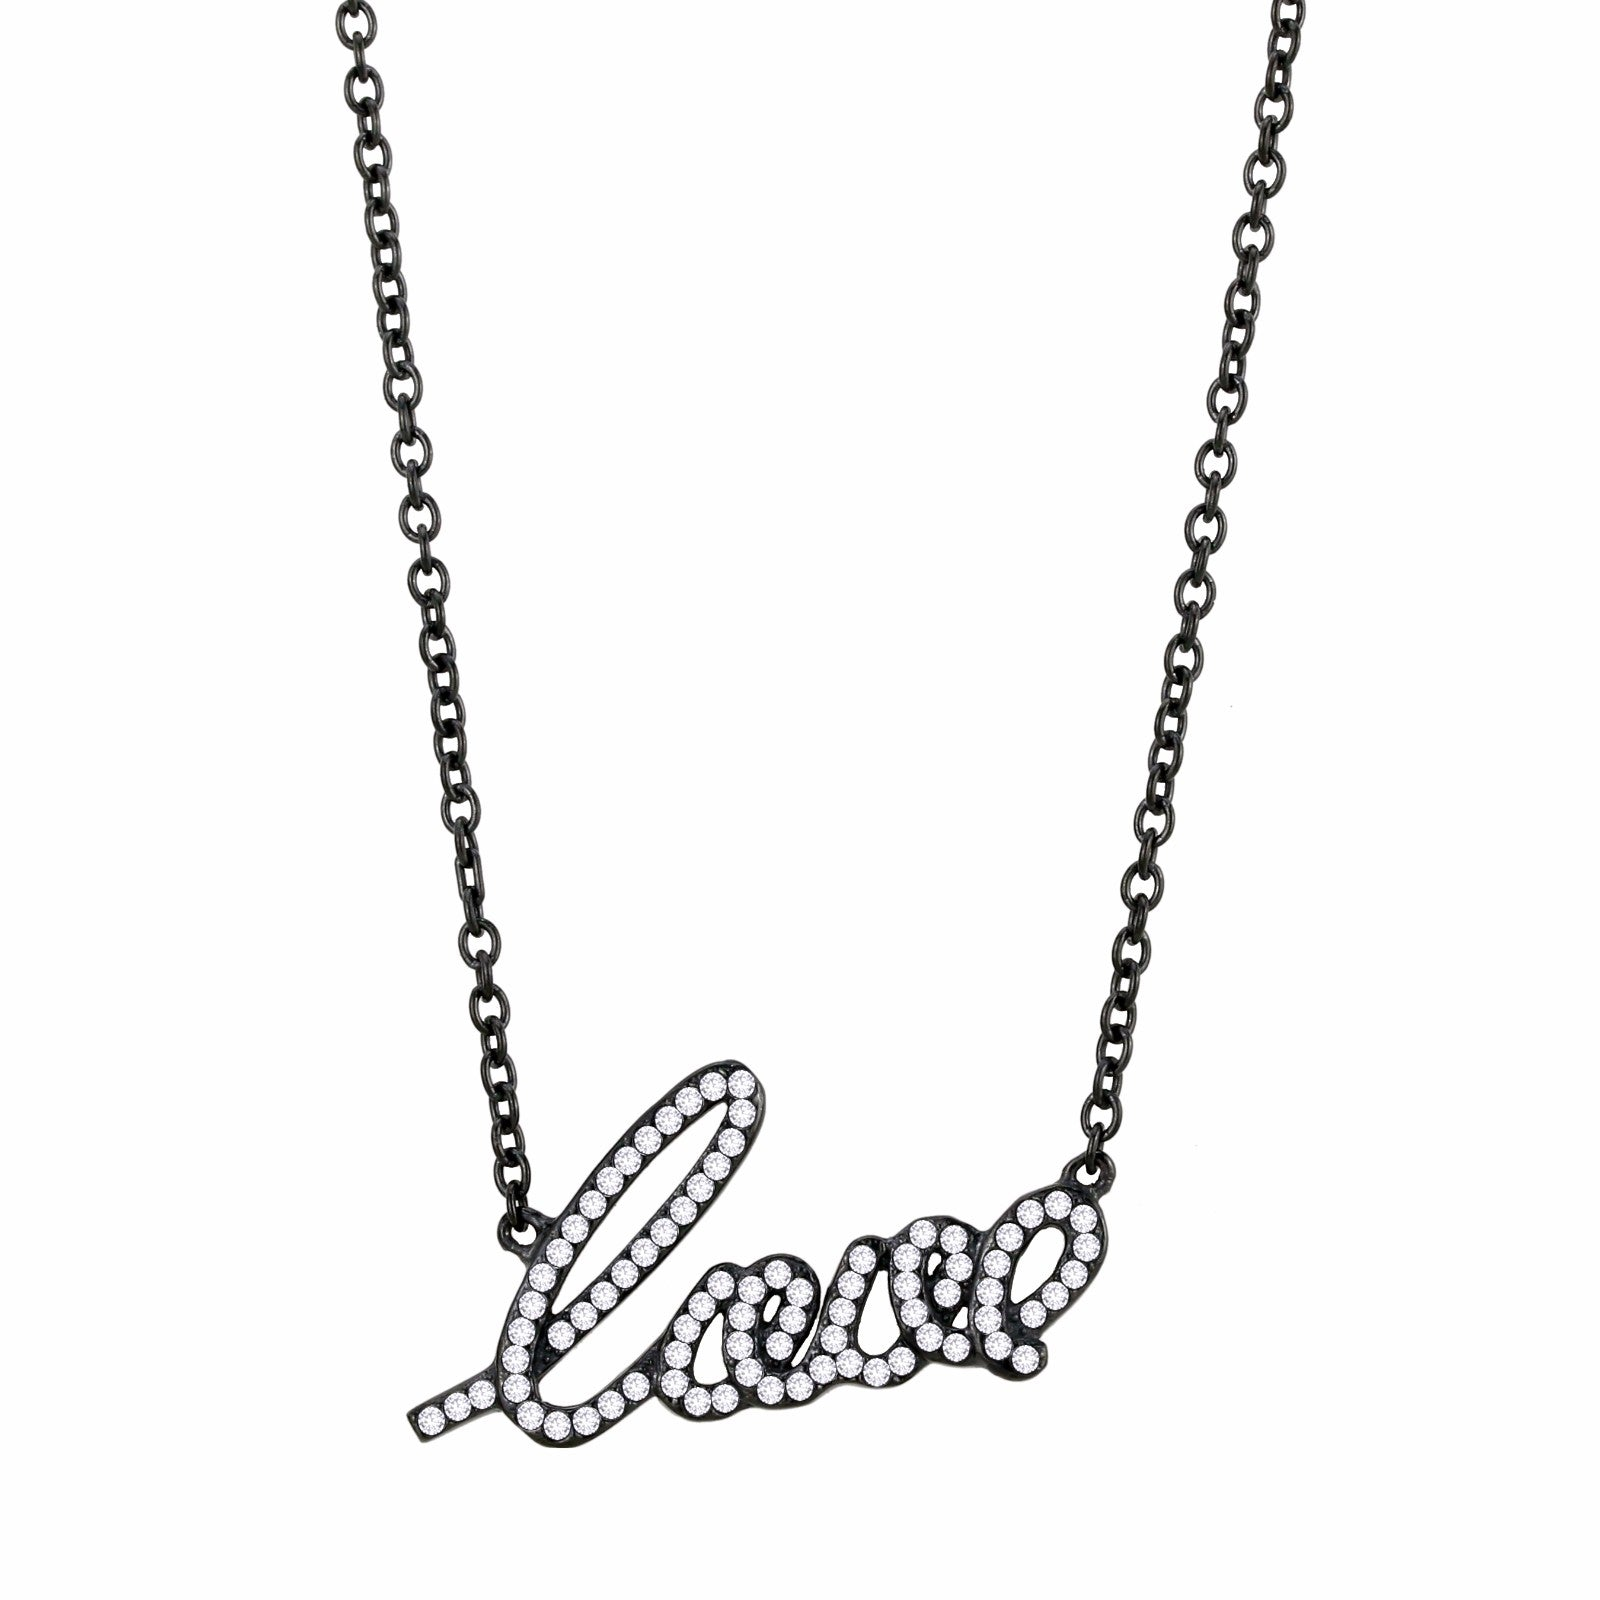 Womens Black IP Stainless Steel LOVE Pendant Necklace with Clear CZs - LA NY Jewelry